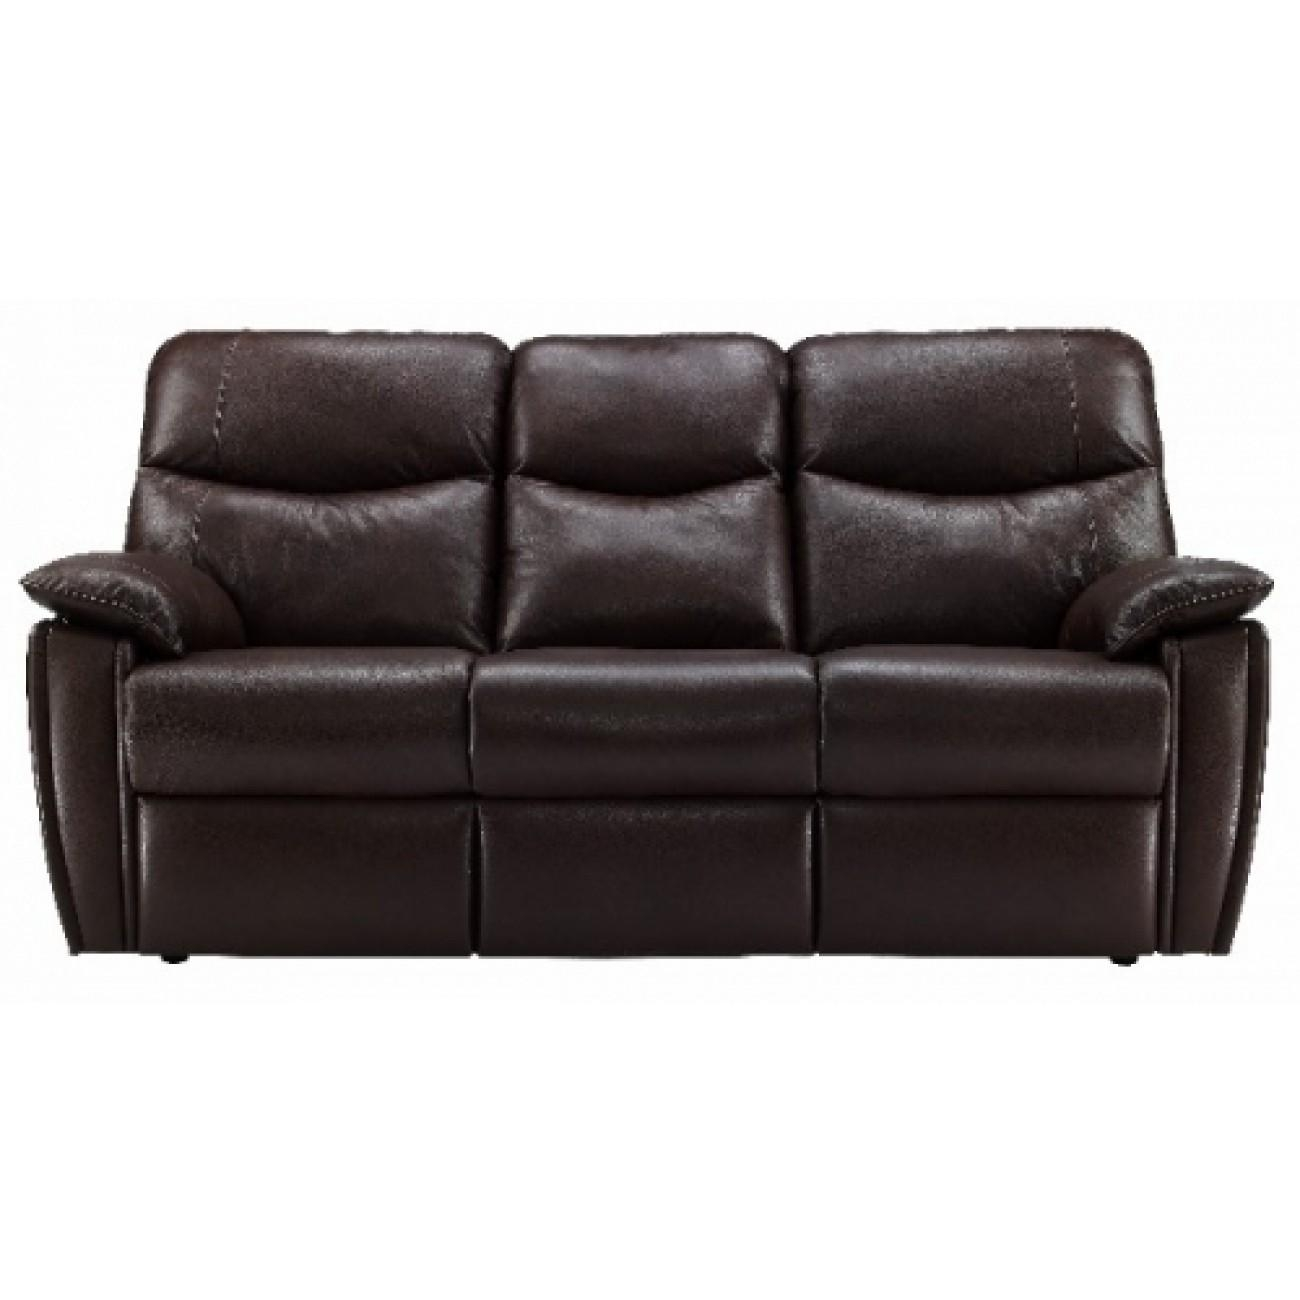 Sealy Leather Sofa: Beautiful Pictures, Photos Of Remodeling Within Sealy Sofas (Image 12 of 20)